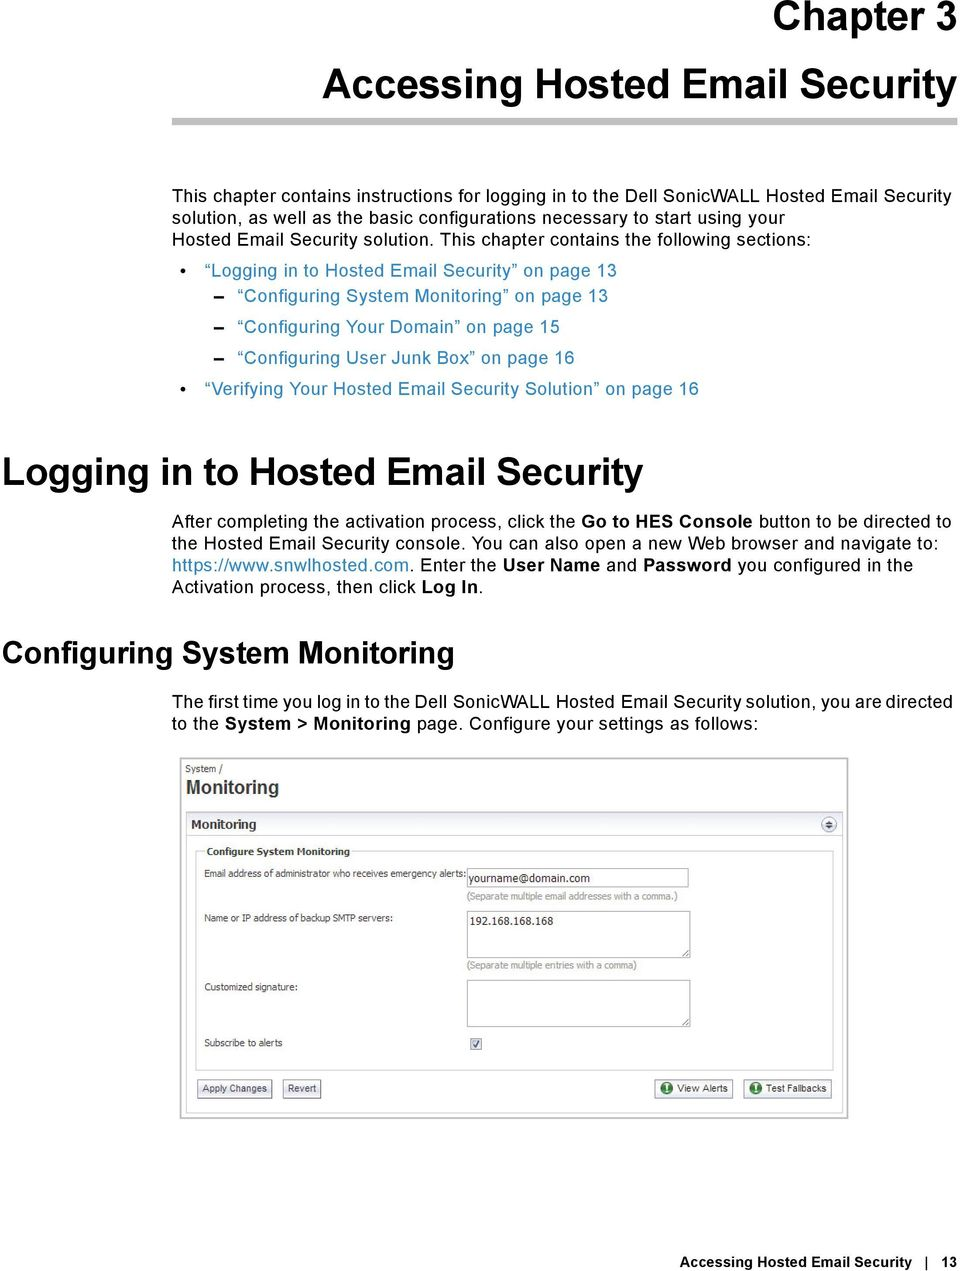 This chapter contains the following sections: Logging in to Hosted Email Security on page 13 Configuring System Monitoring on page 13 Configuring Your Domain on page 15 Configuring User Junk Box on